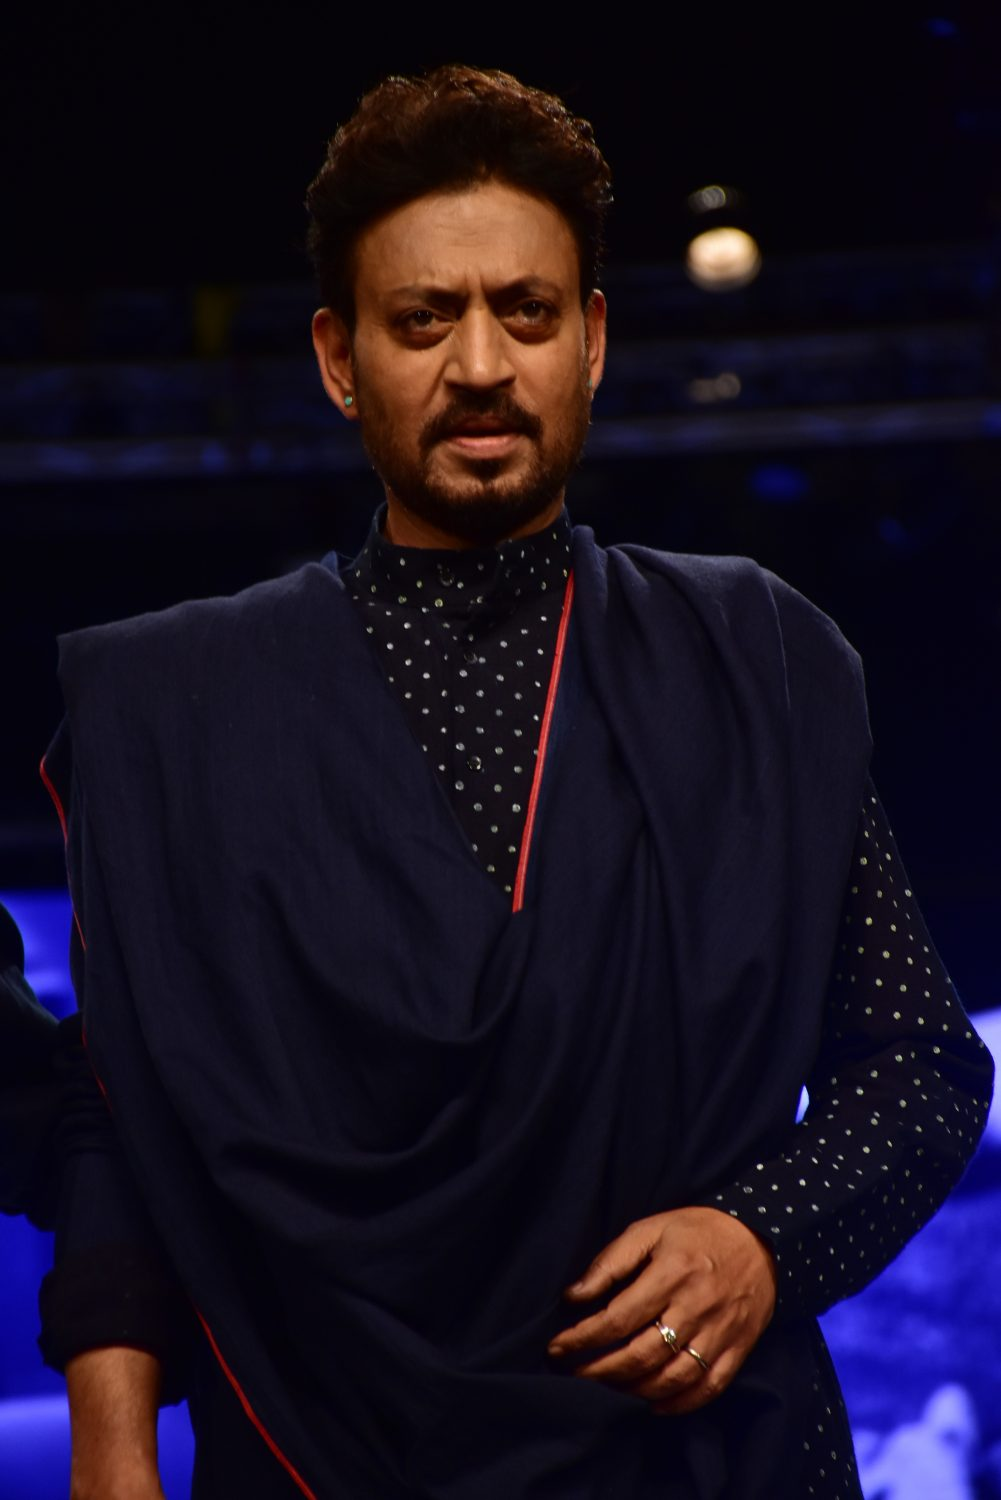 life of pi and jurassic world actor, irrfan khan, dies aged 53